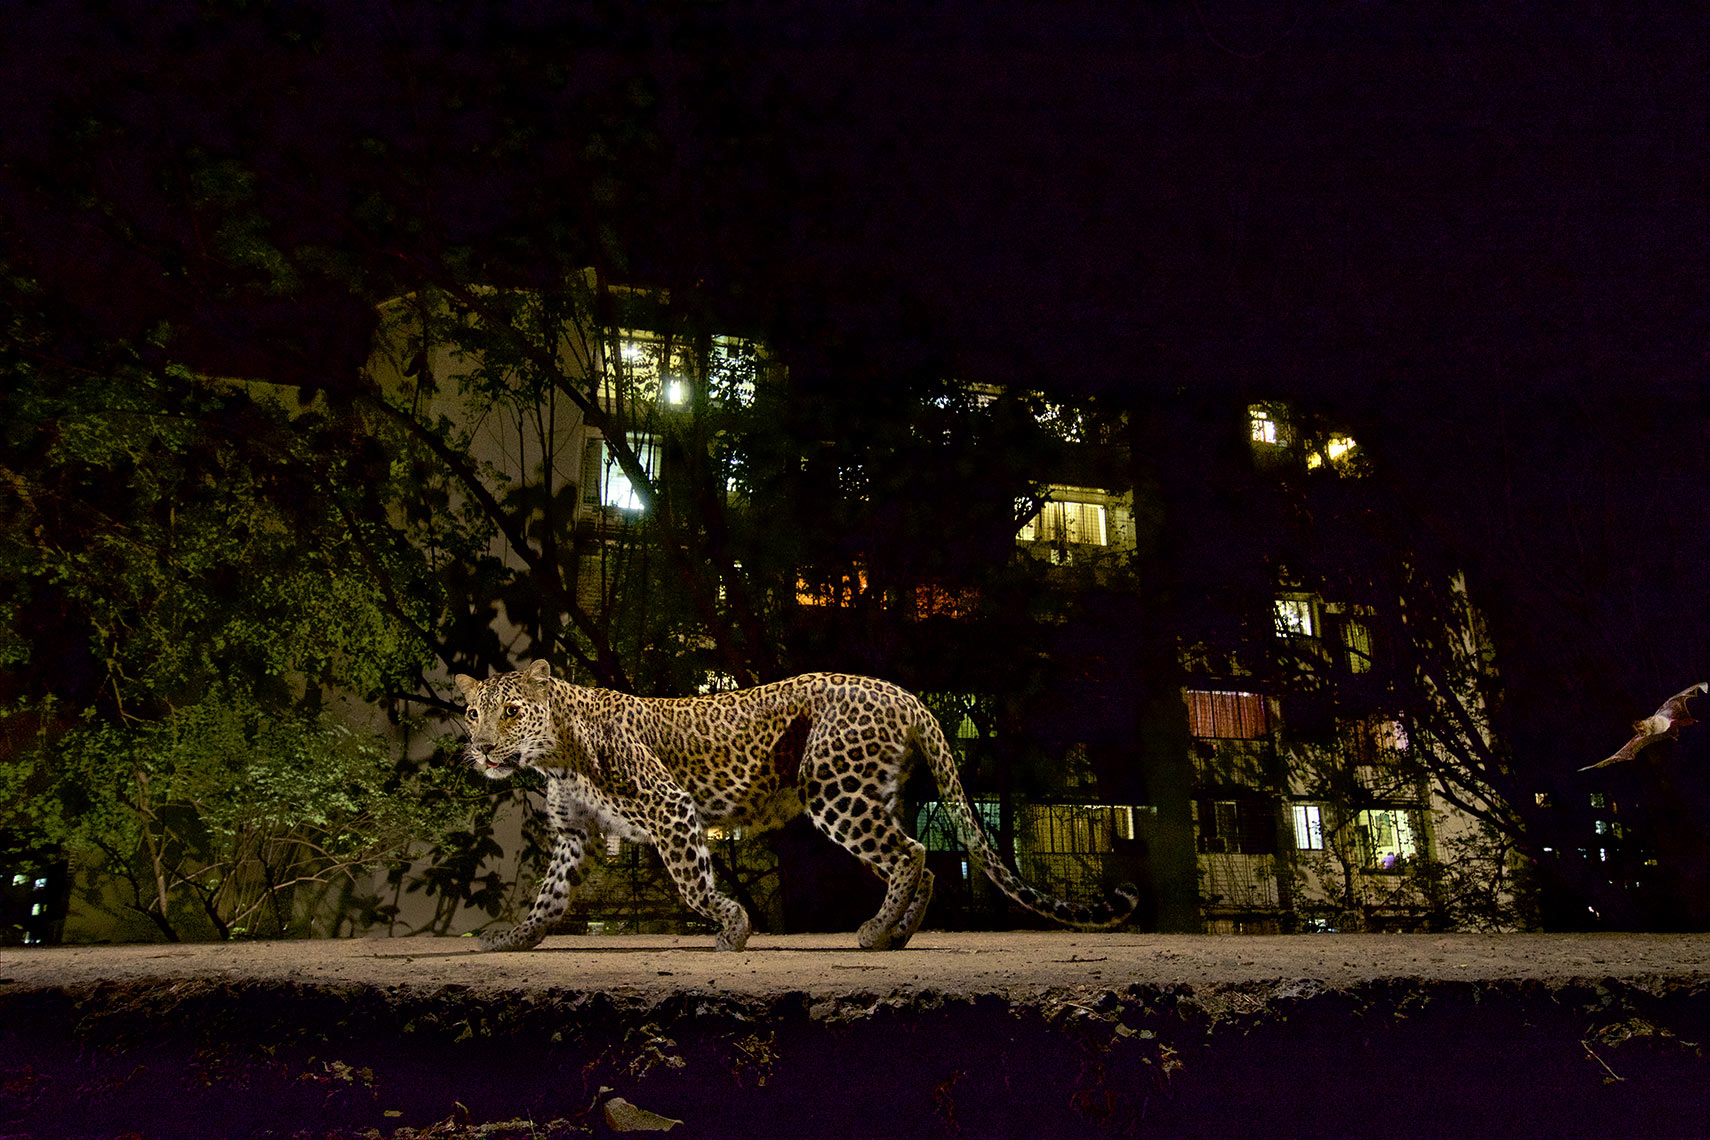 MM8196 Leopards - Sanjay Gandhi National Park, Mumbai, Maharashtra, India Leopard walking on border trail of SGNP with colony apt. building in the background.